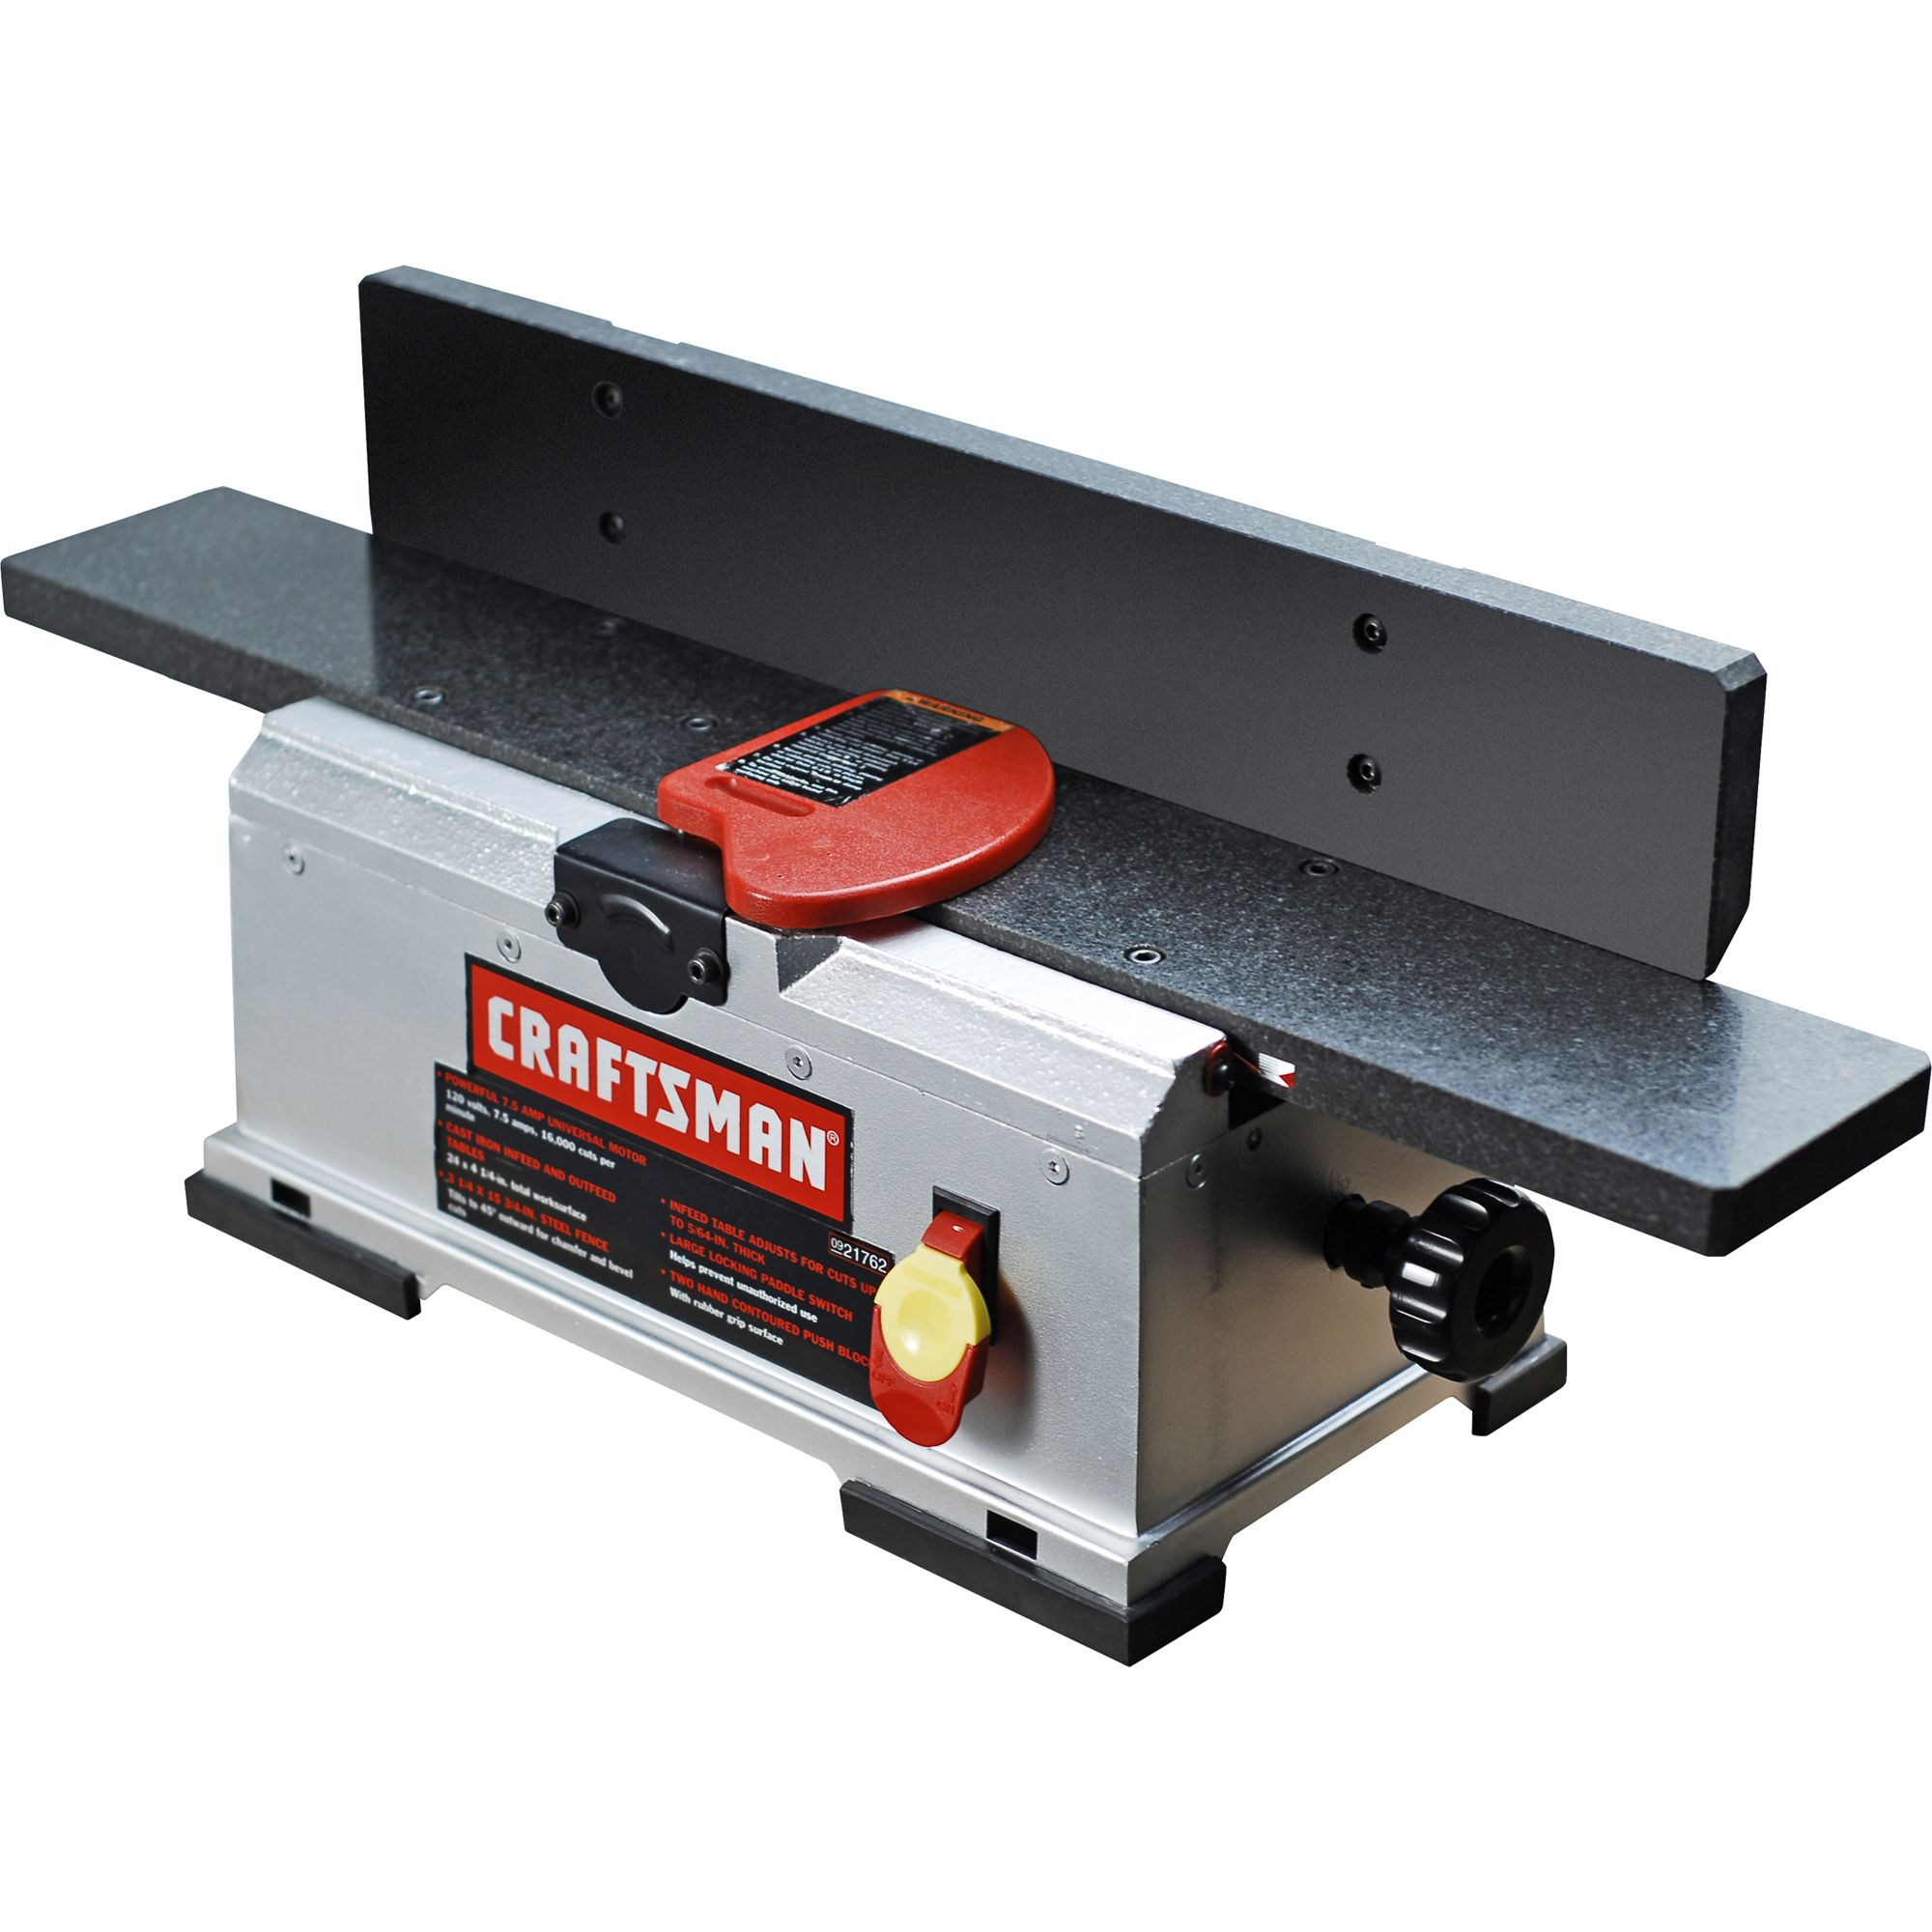 Craftsman Planer Manual